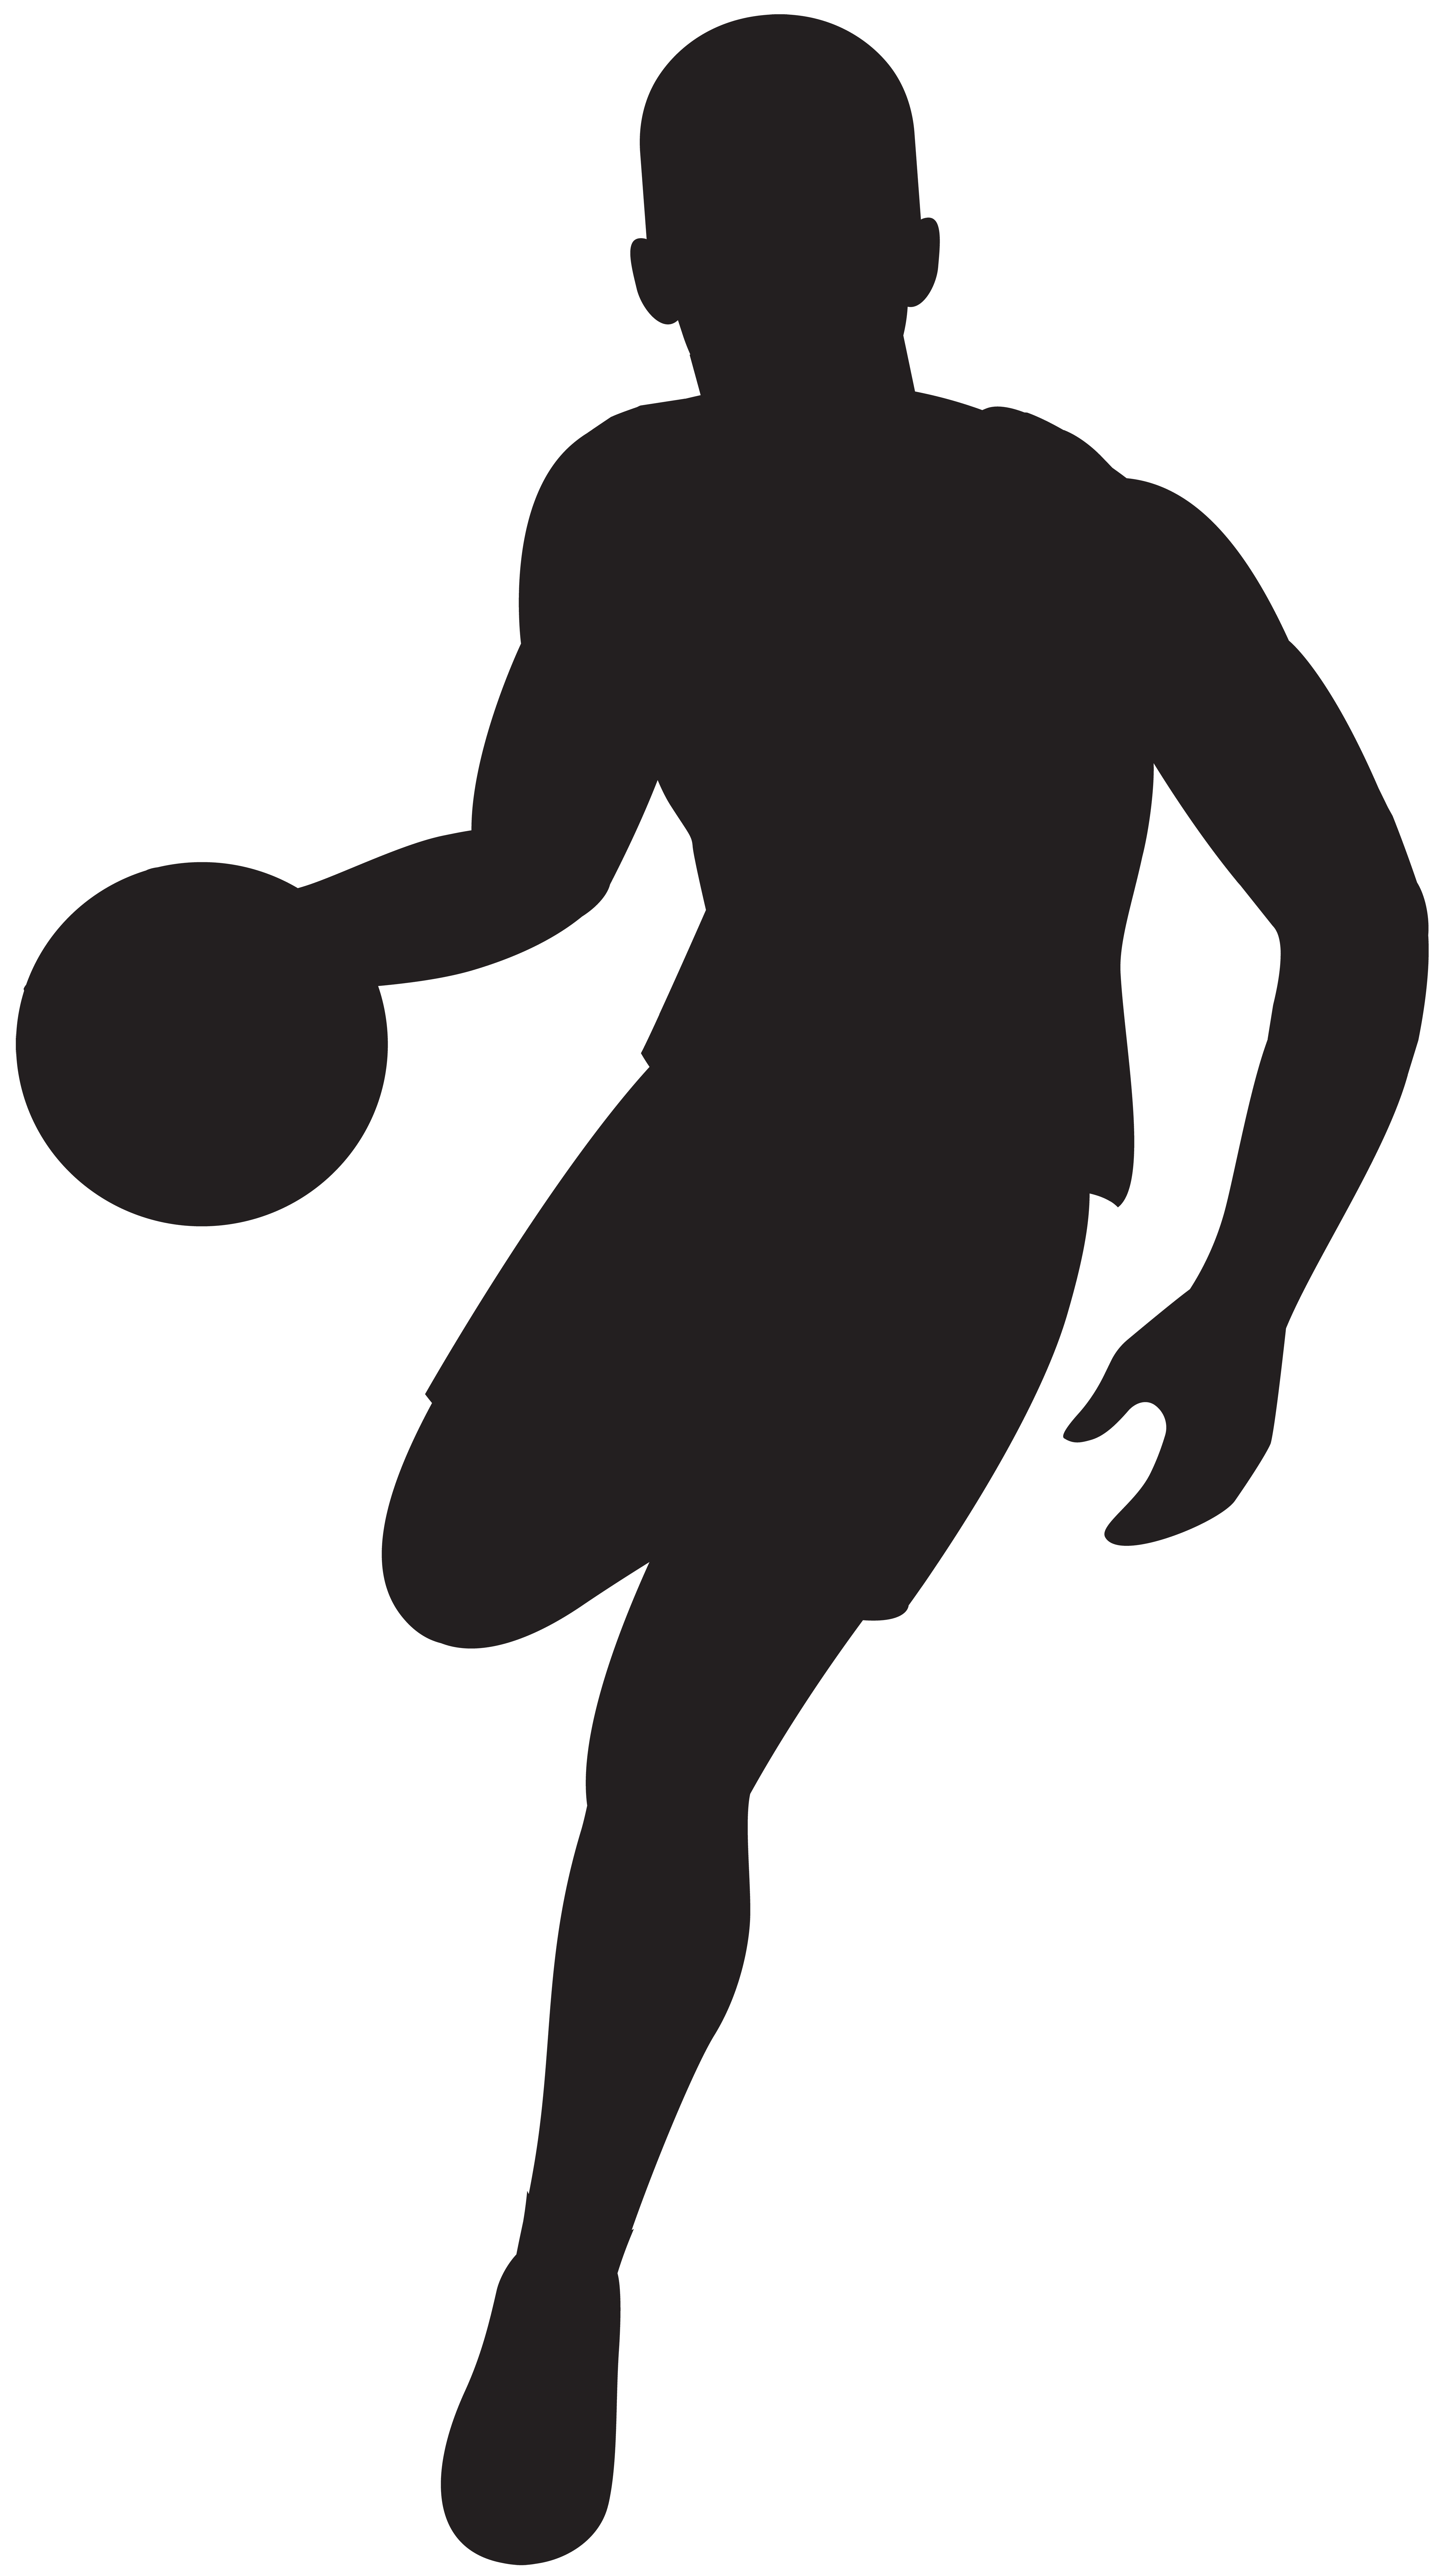 Basketball player clipart png 5 » Clipart Station.